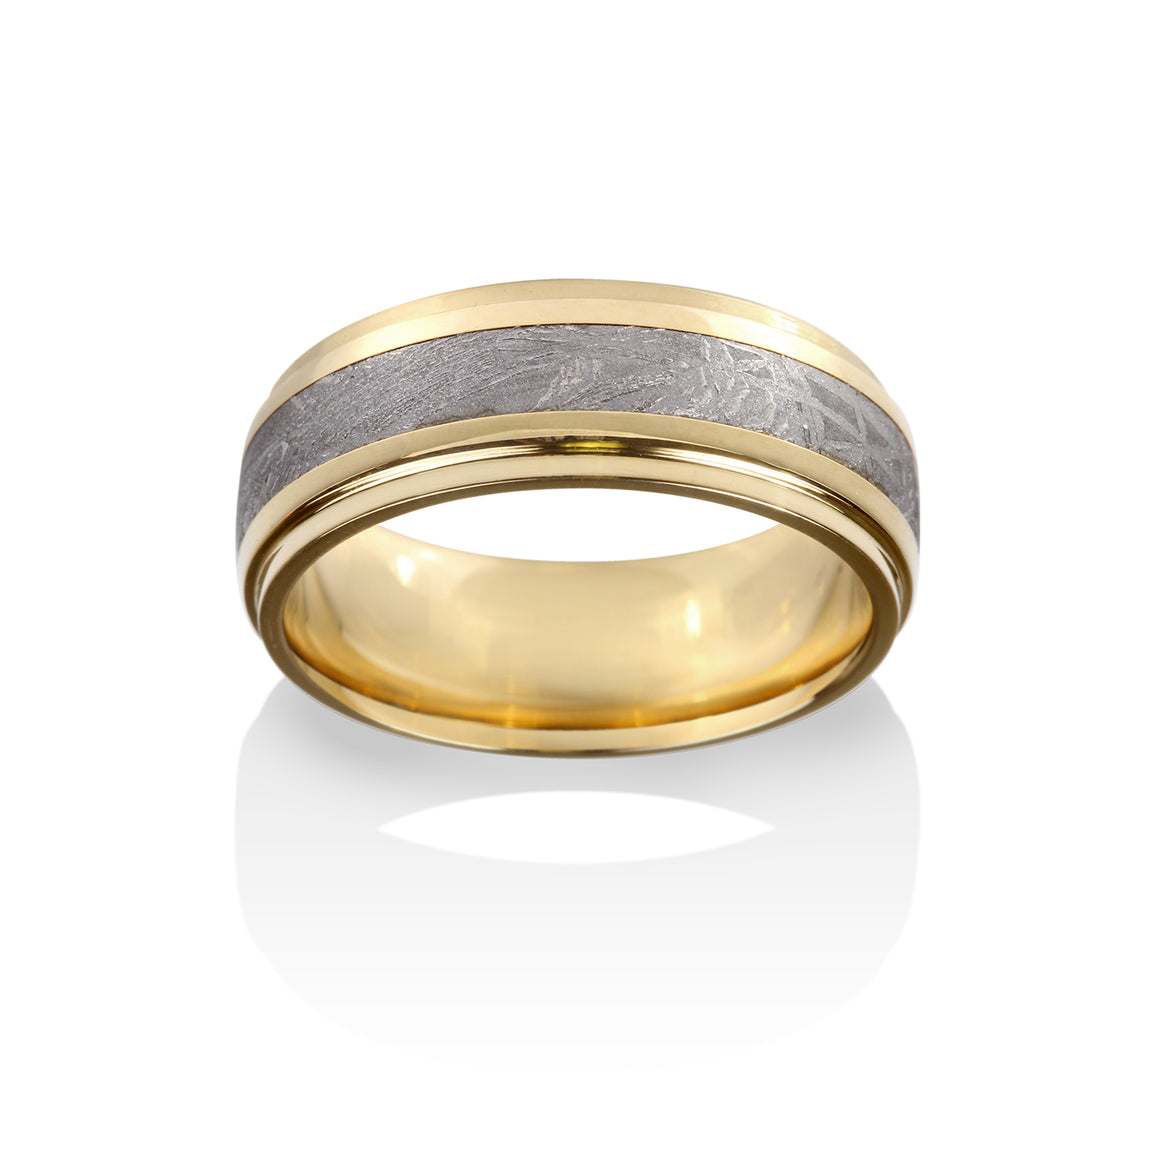 Chris Ploof 18K Yellow Gold Rigil Kentaurus Meteorite Ring